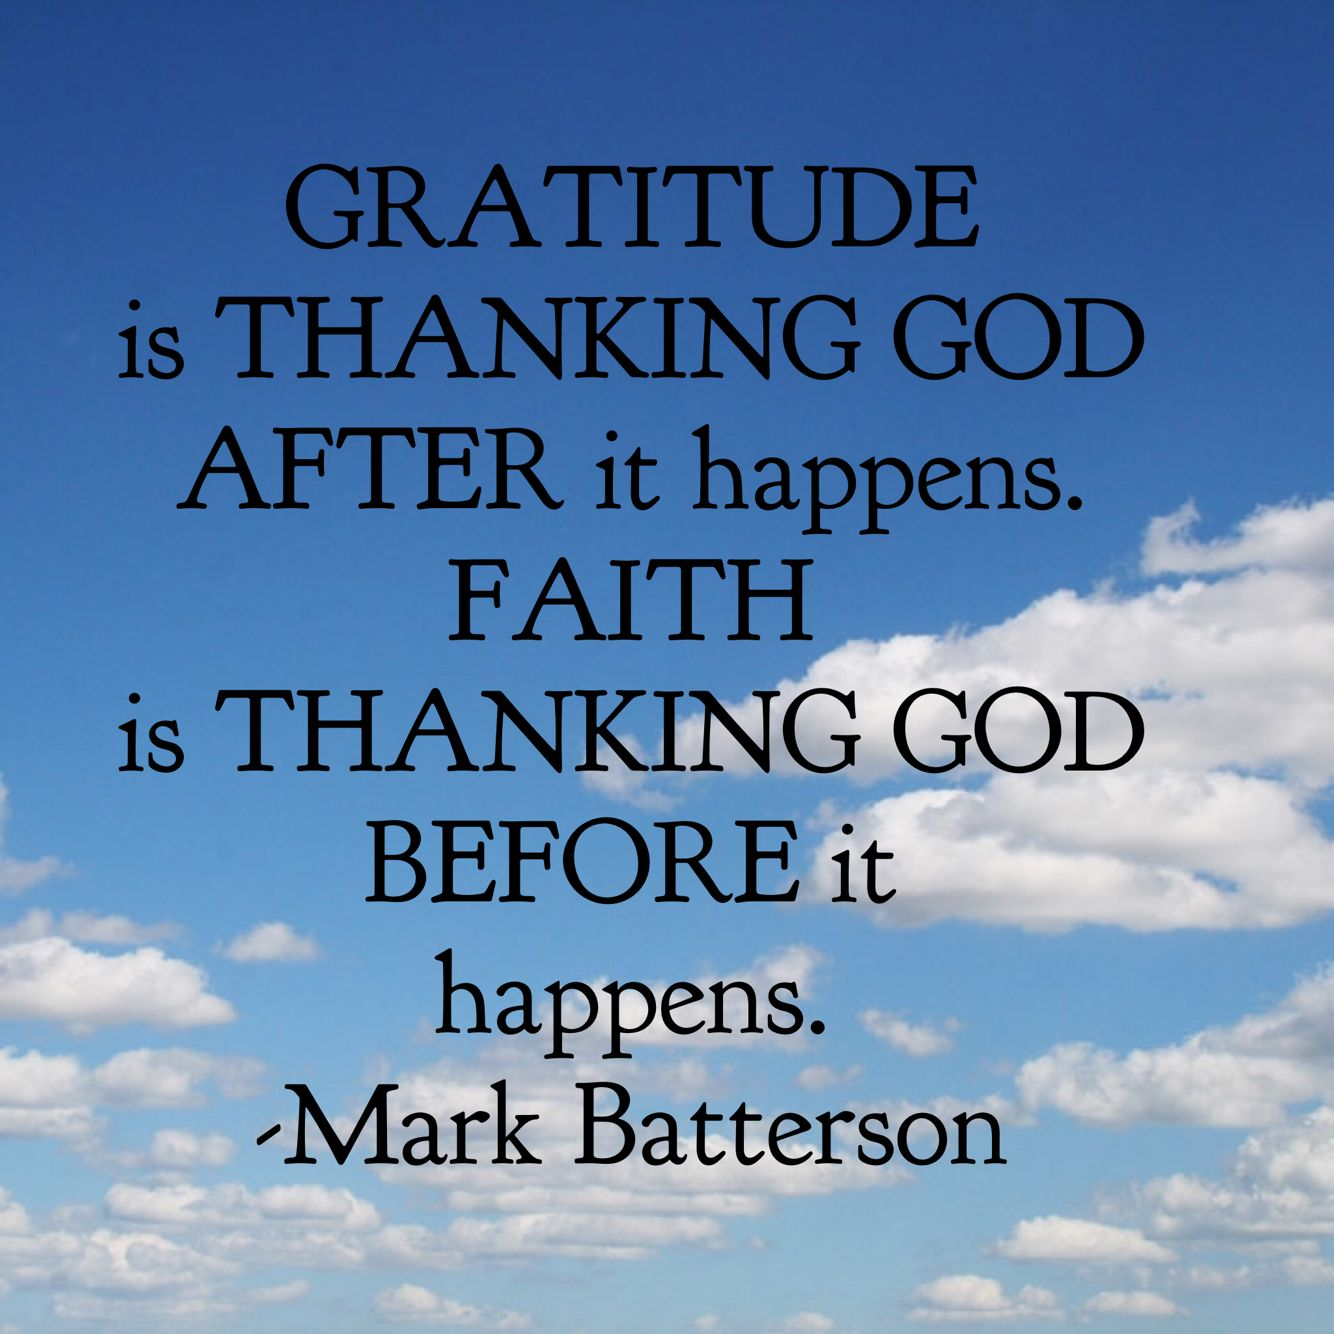 Thanking God Quotes Gratitude Is Thanking God After It Happensfaith Is Thanking God